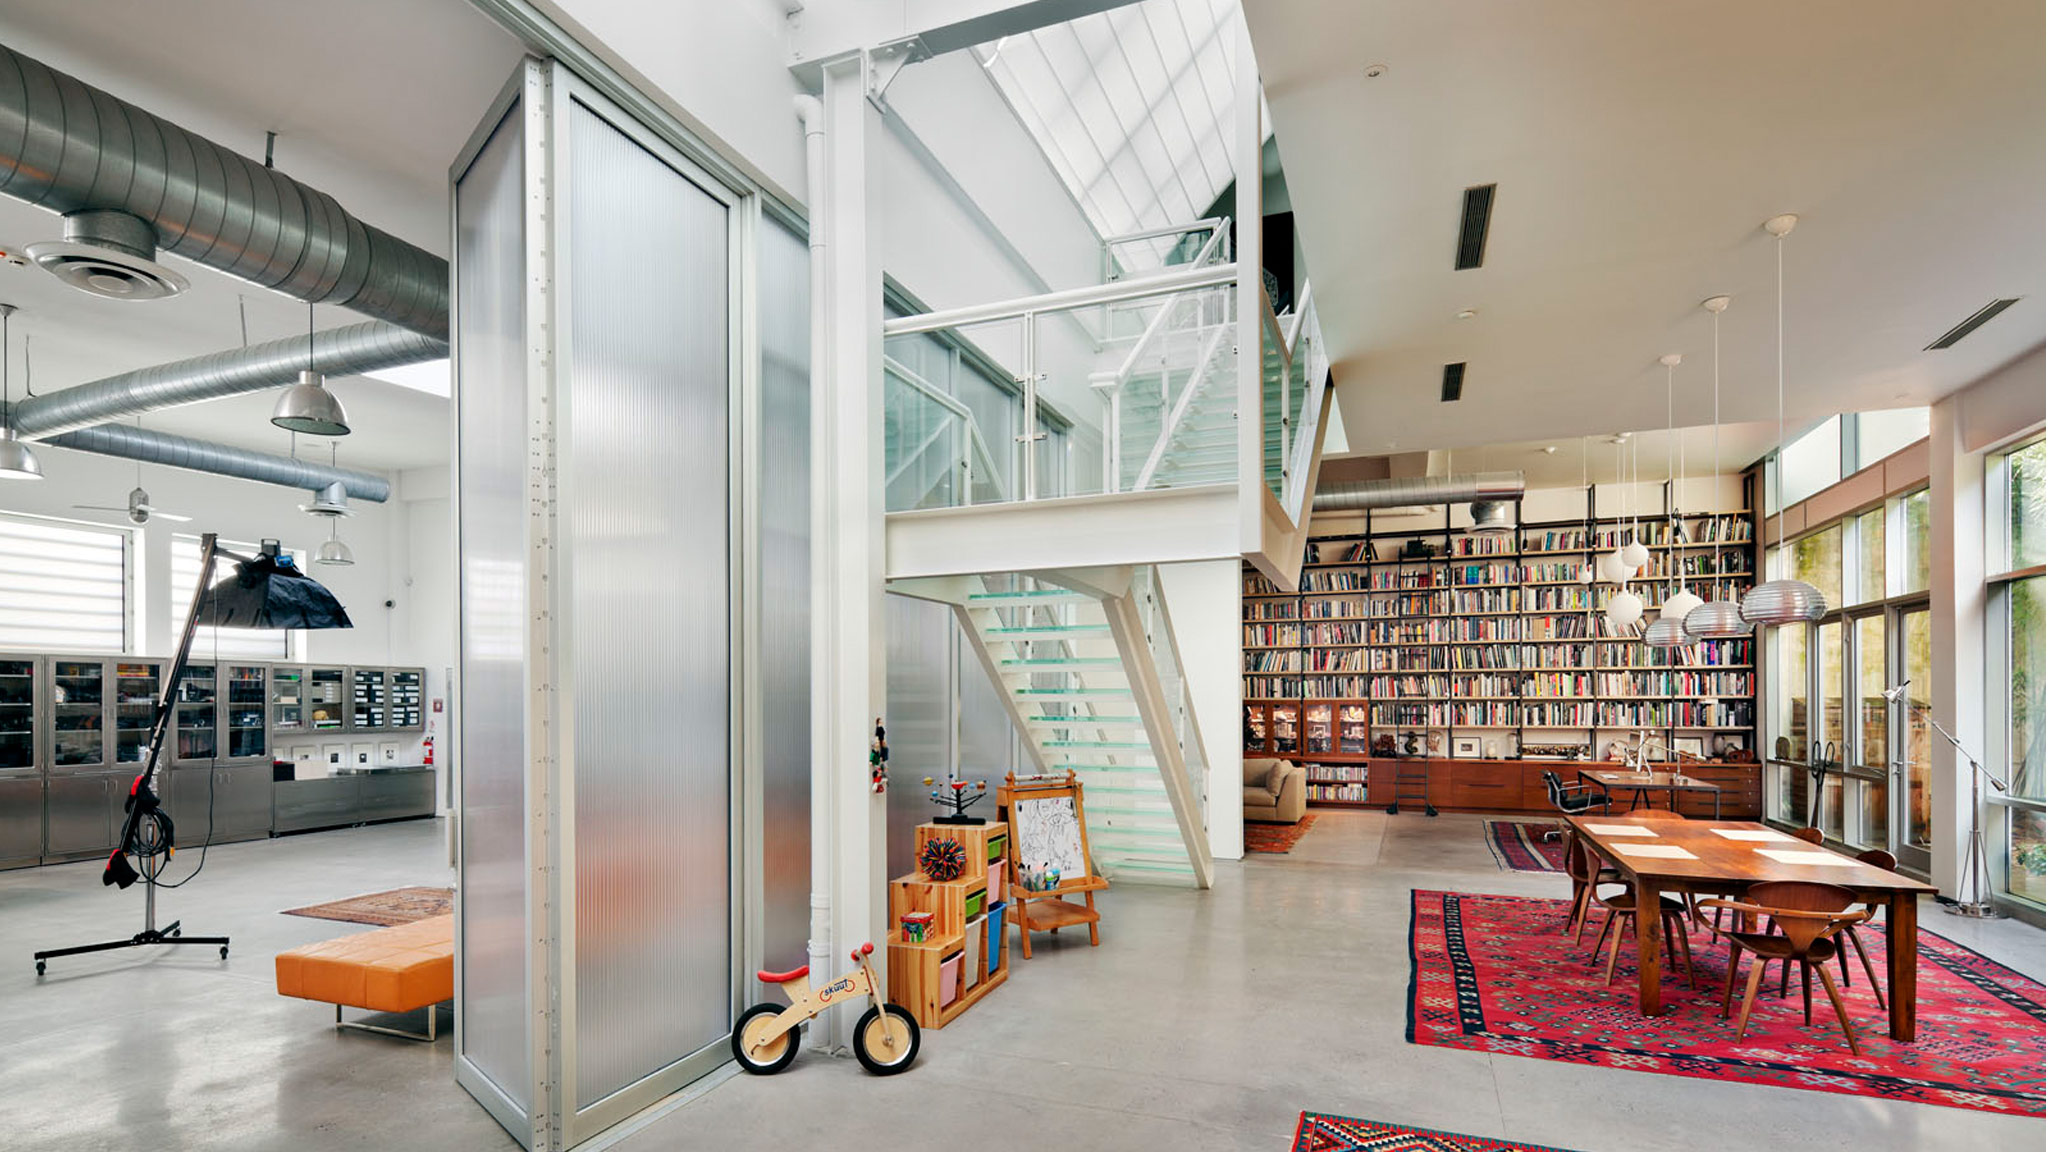 Architecture The Live Work Studios Of New York S Artists